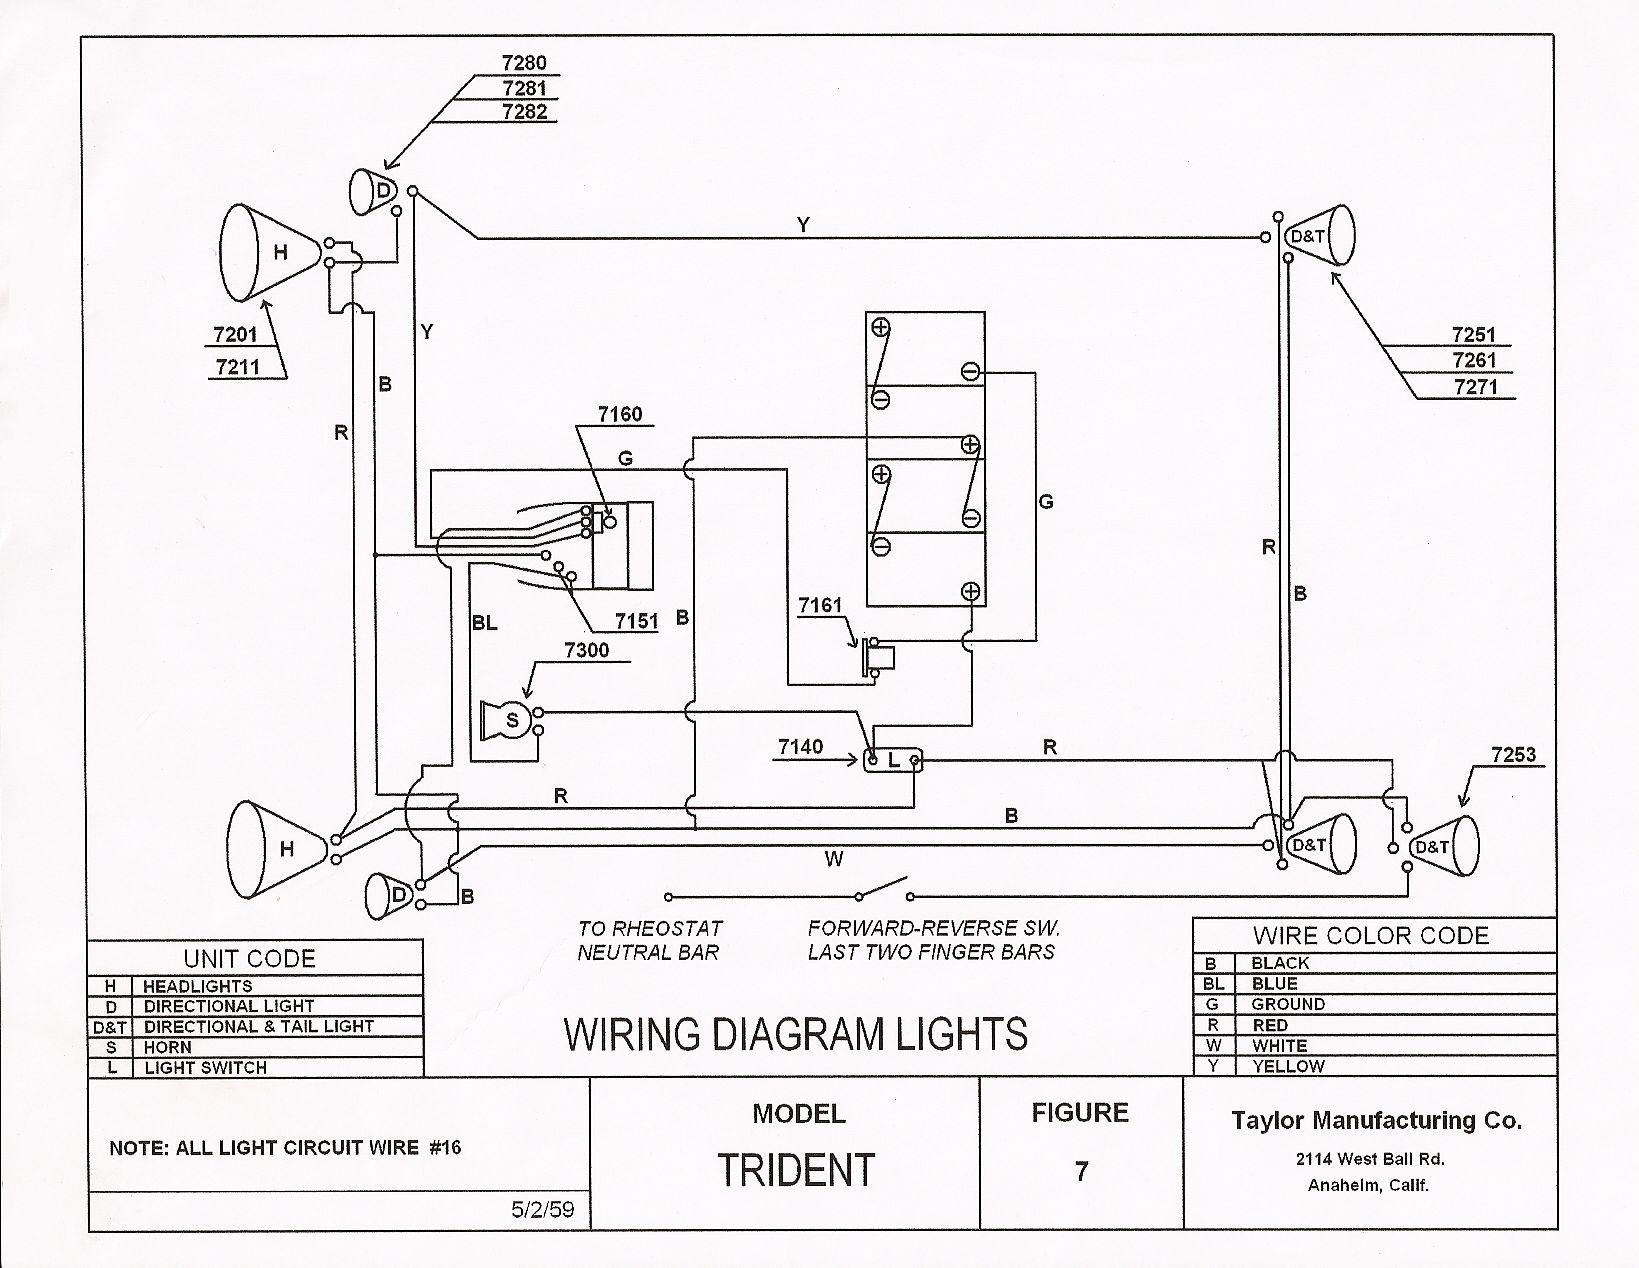 trident01 vintagegolfcartparts com cushman 36 volt wiring diagram at eliteediting.co